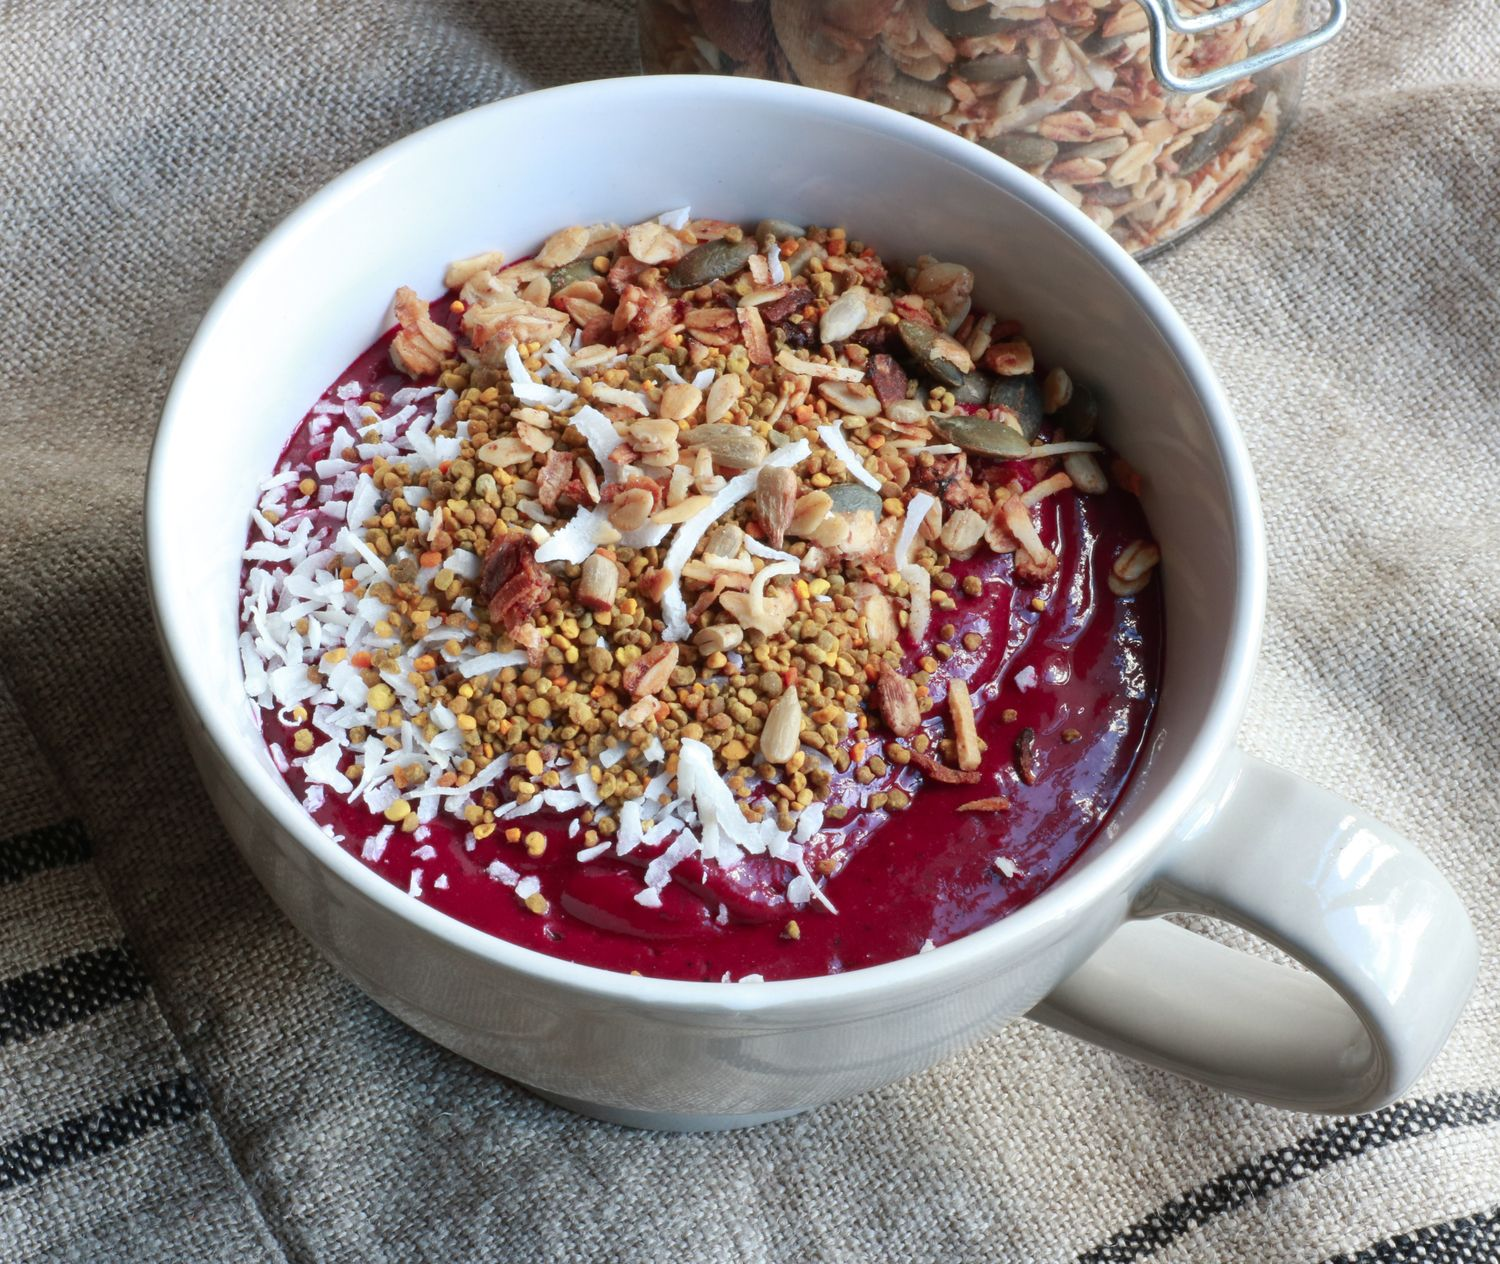 Brazillian Acai Berry Bowl — Wholefood Nosh 1 ripe banana  2 slices of beetroot  1 tbsp chia seeds  1/2 cup almond milk  1/4 cup water  a few cubes of ice  1 tbsp of Acai berry powder (I like Matakana Superfoods or Organic Burst)   1 tsp of pure maple syrup (optional)  Toppings  Banana Cinnamon Granola  Raw bee pollen (this is usually available at organic or health food stores)